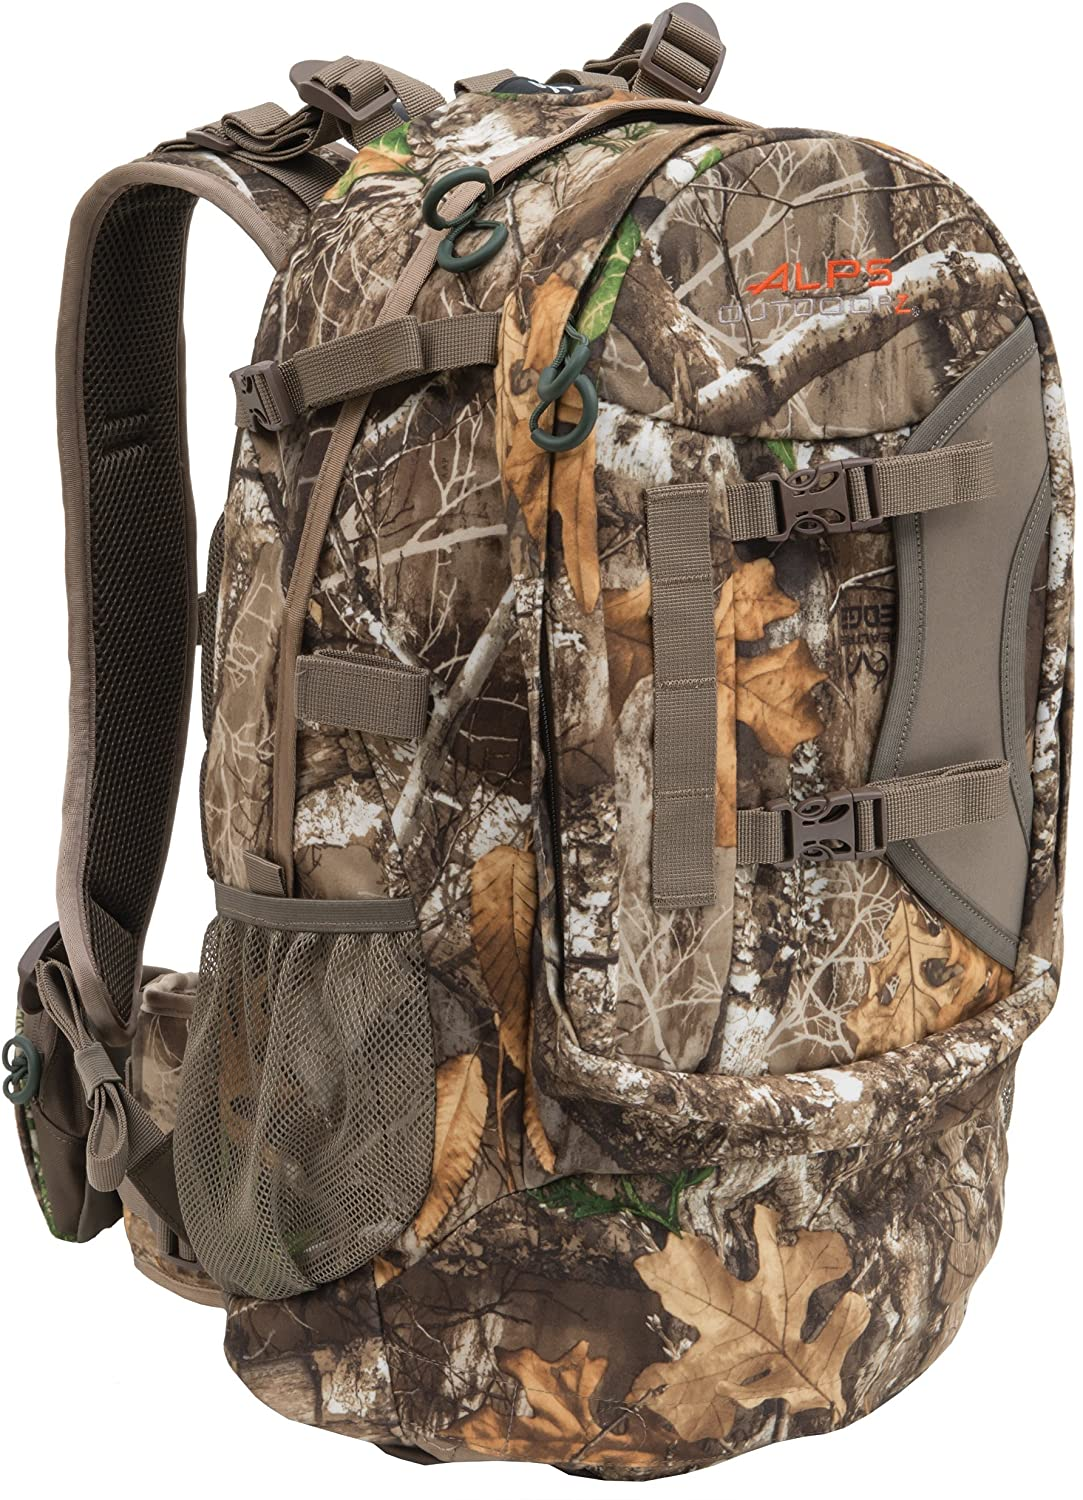 best hunting day pack: ALPS OutdoorZ Pursuit Hunting Pack